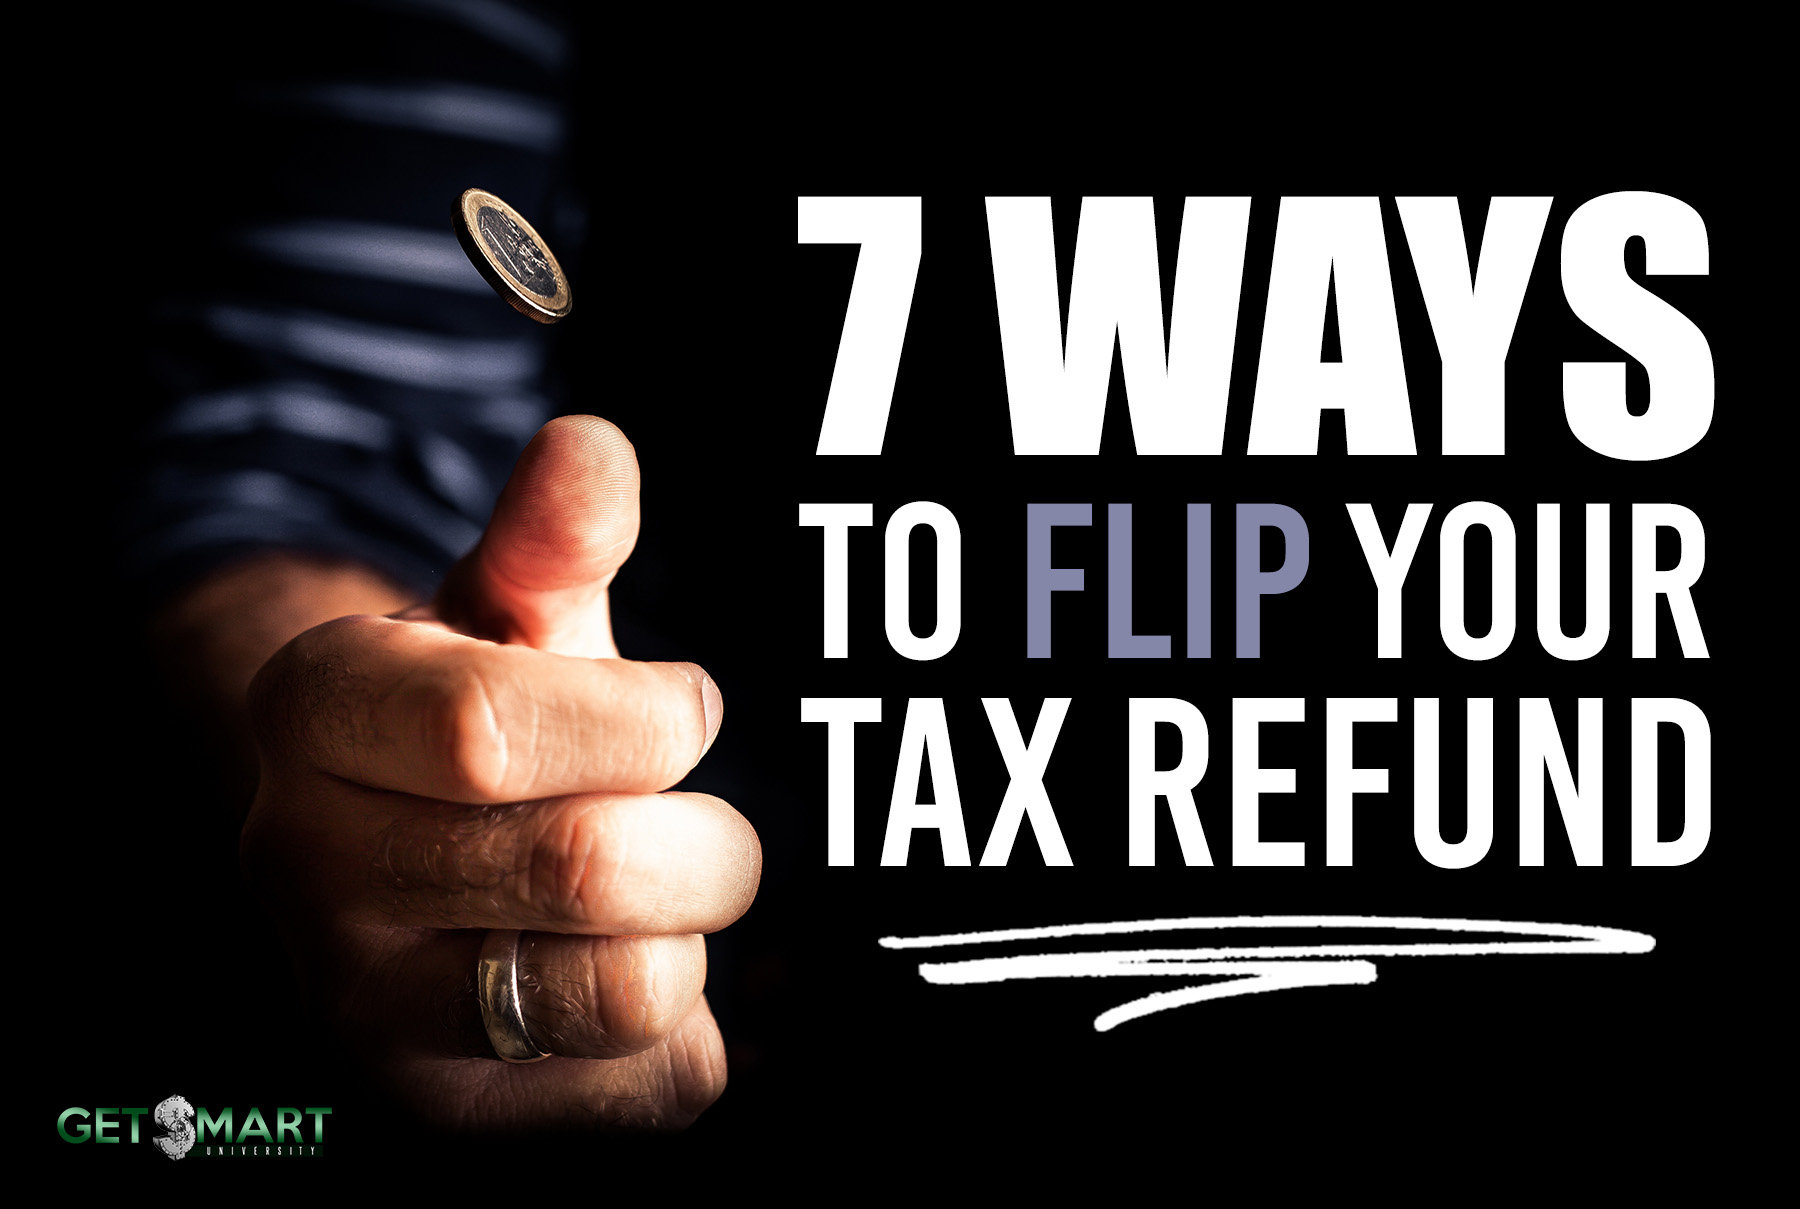 7 ways to flip your tax refund $